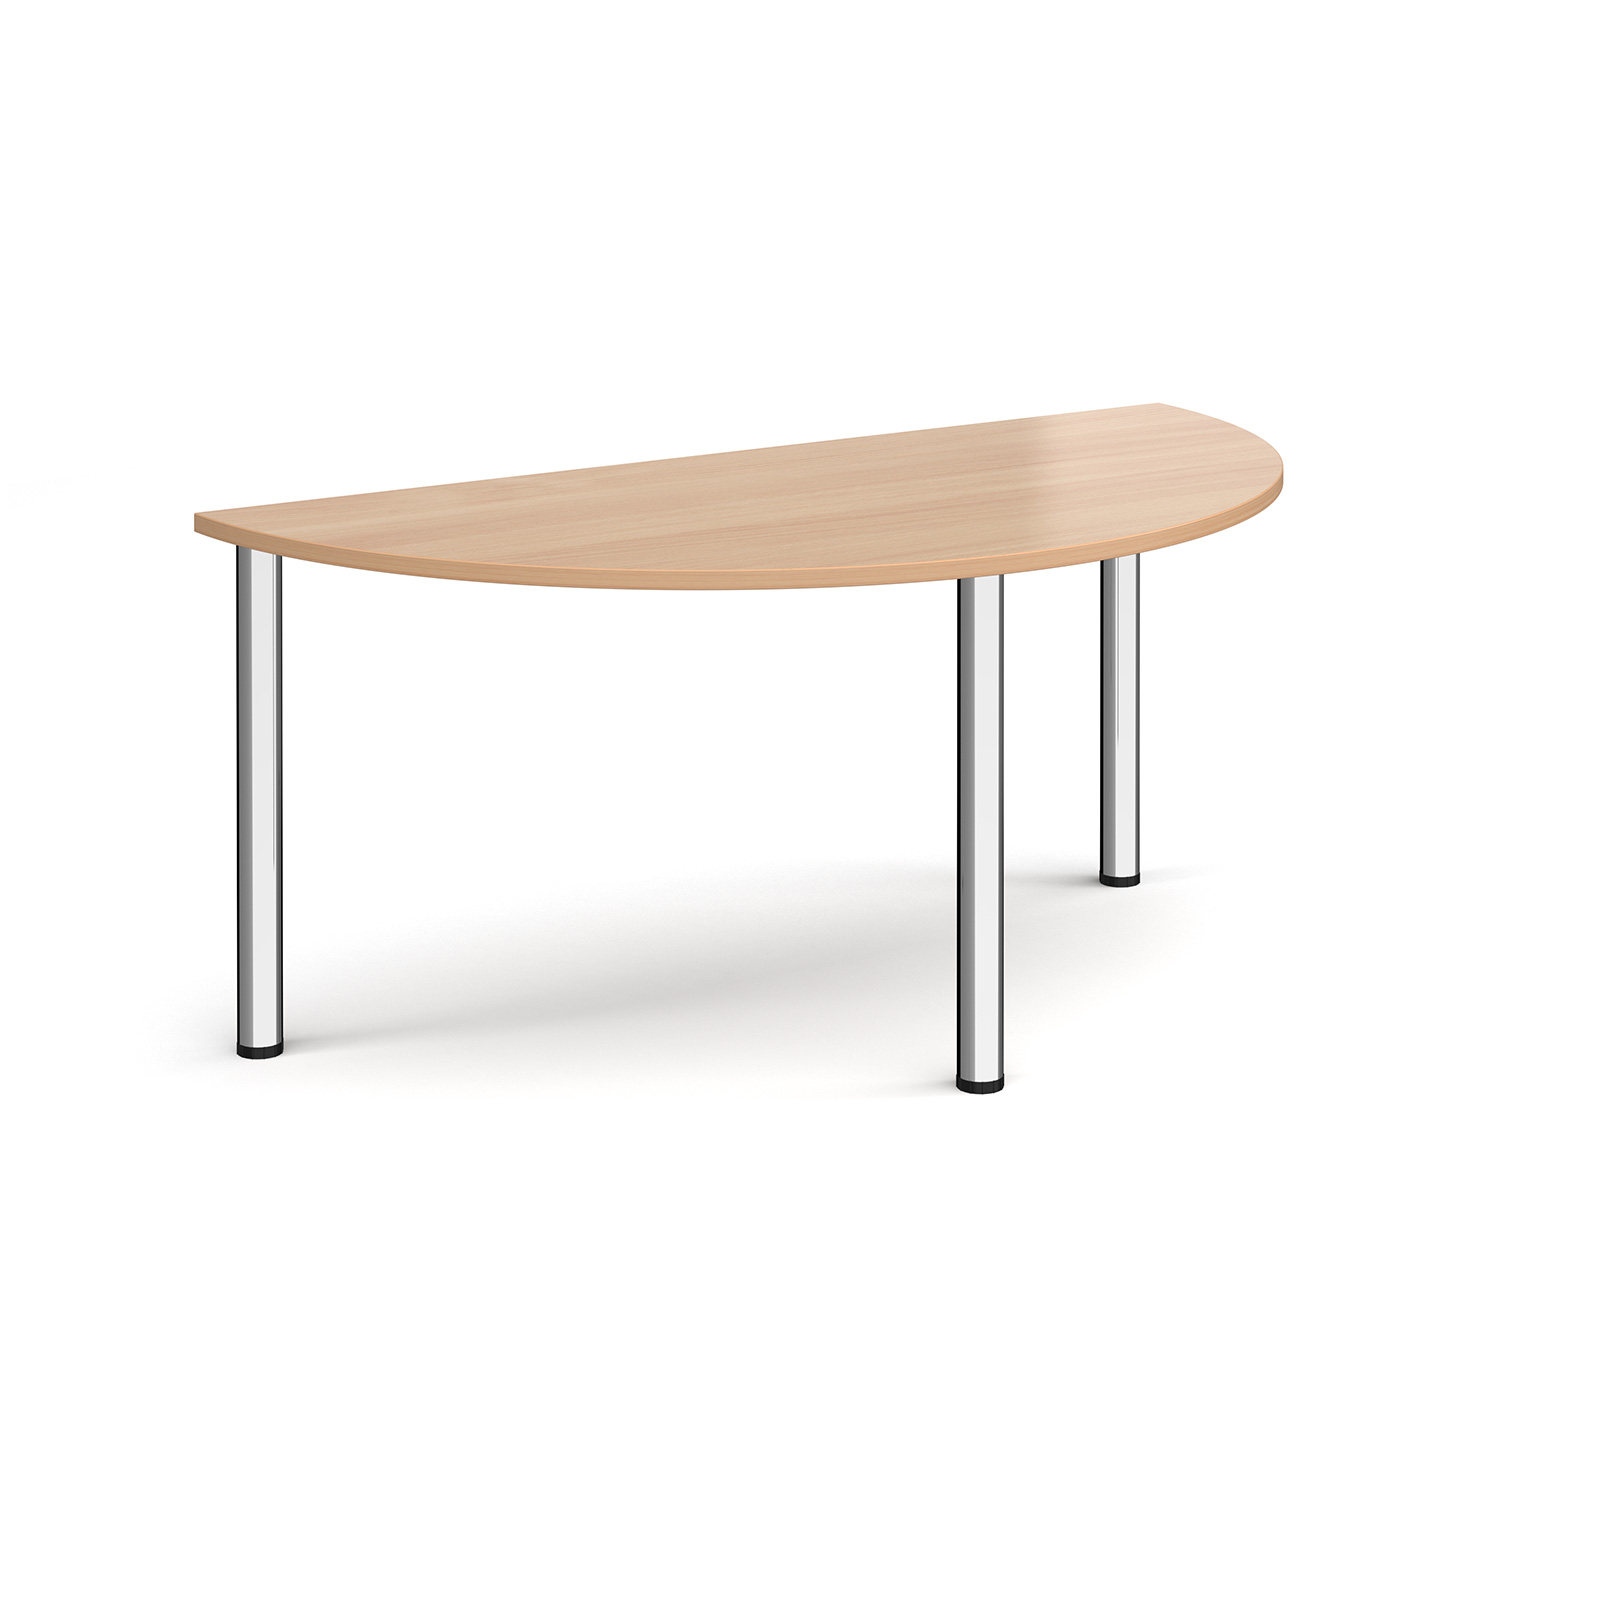 Boardroom / Meeting Semi circular radial leg meeting table